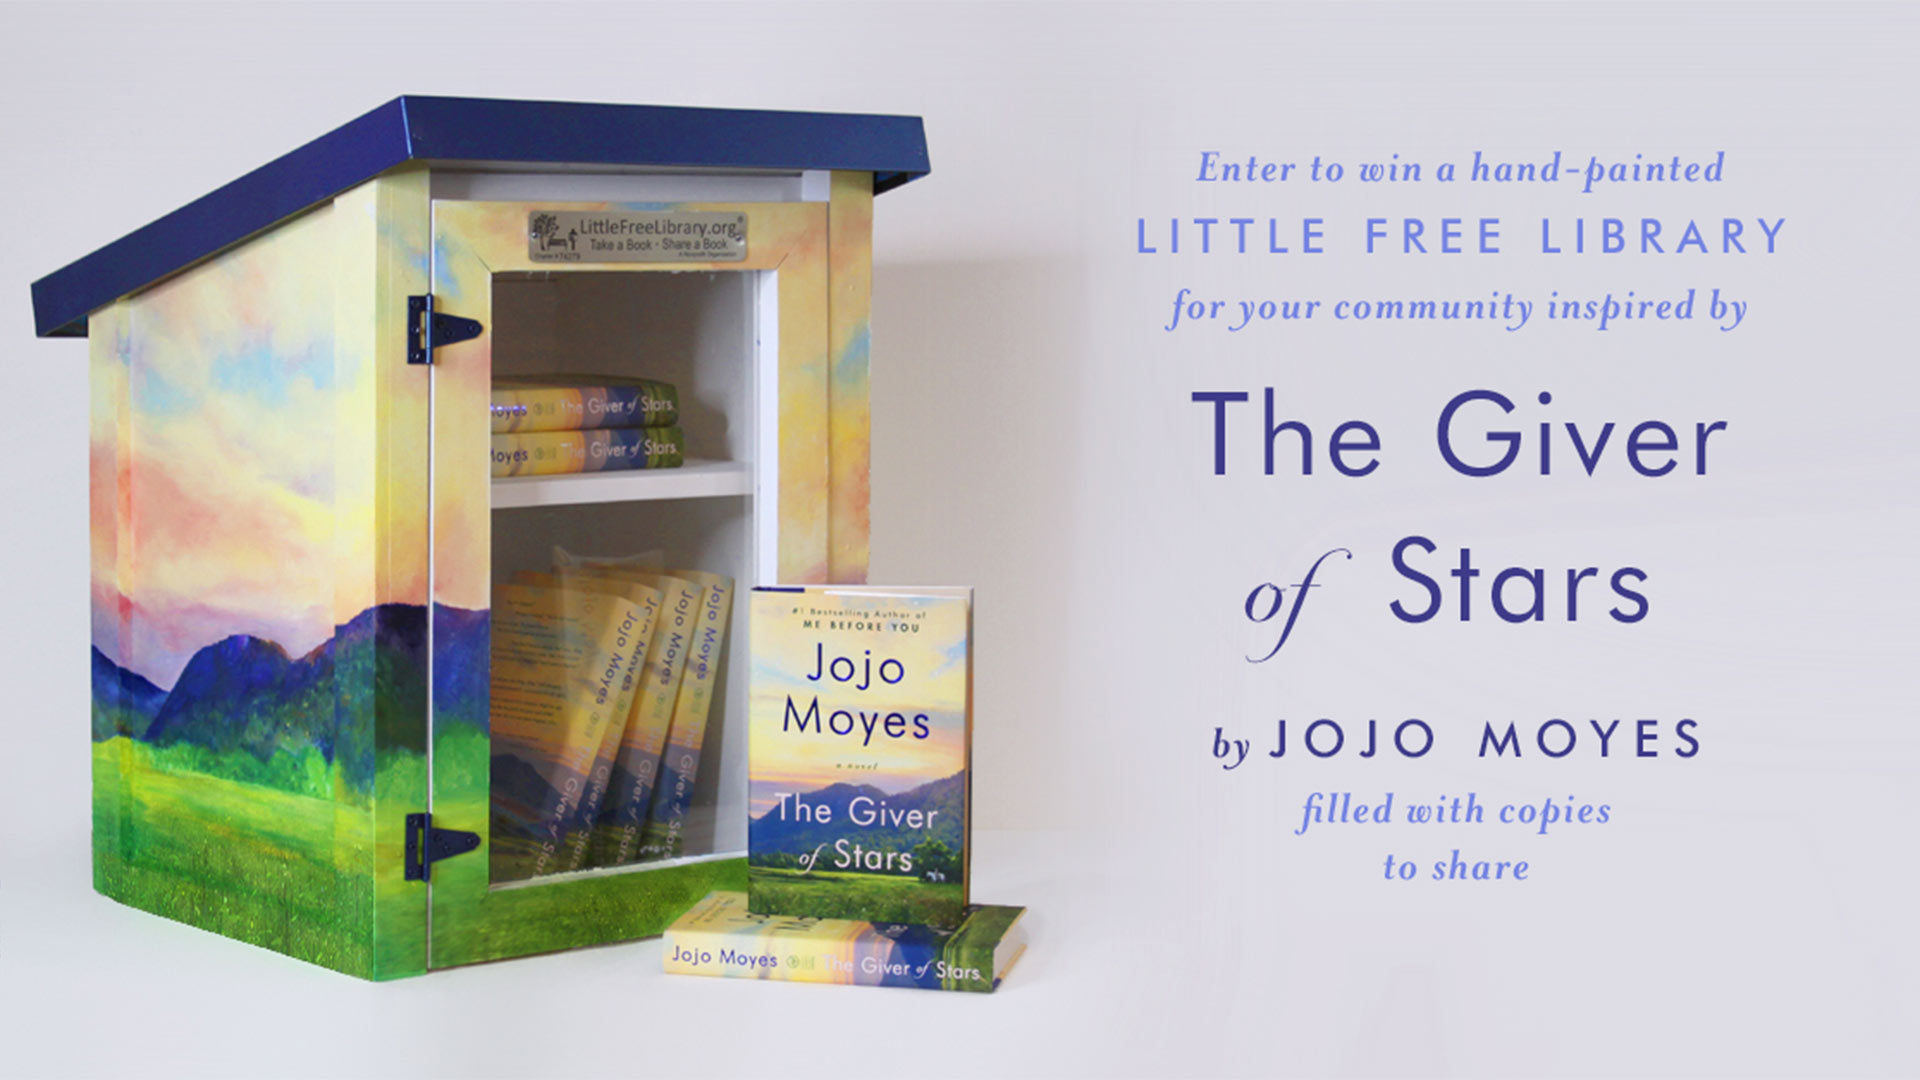 Jojo Moyes Gives Away Little Library